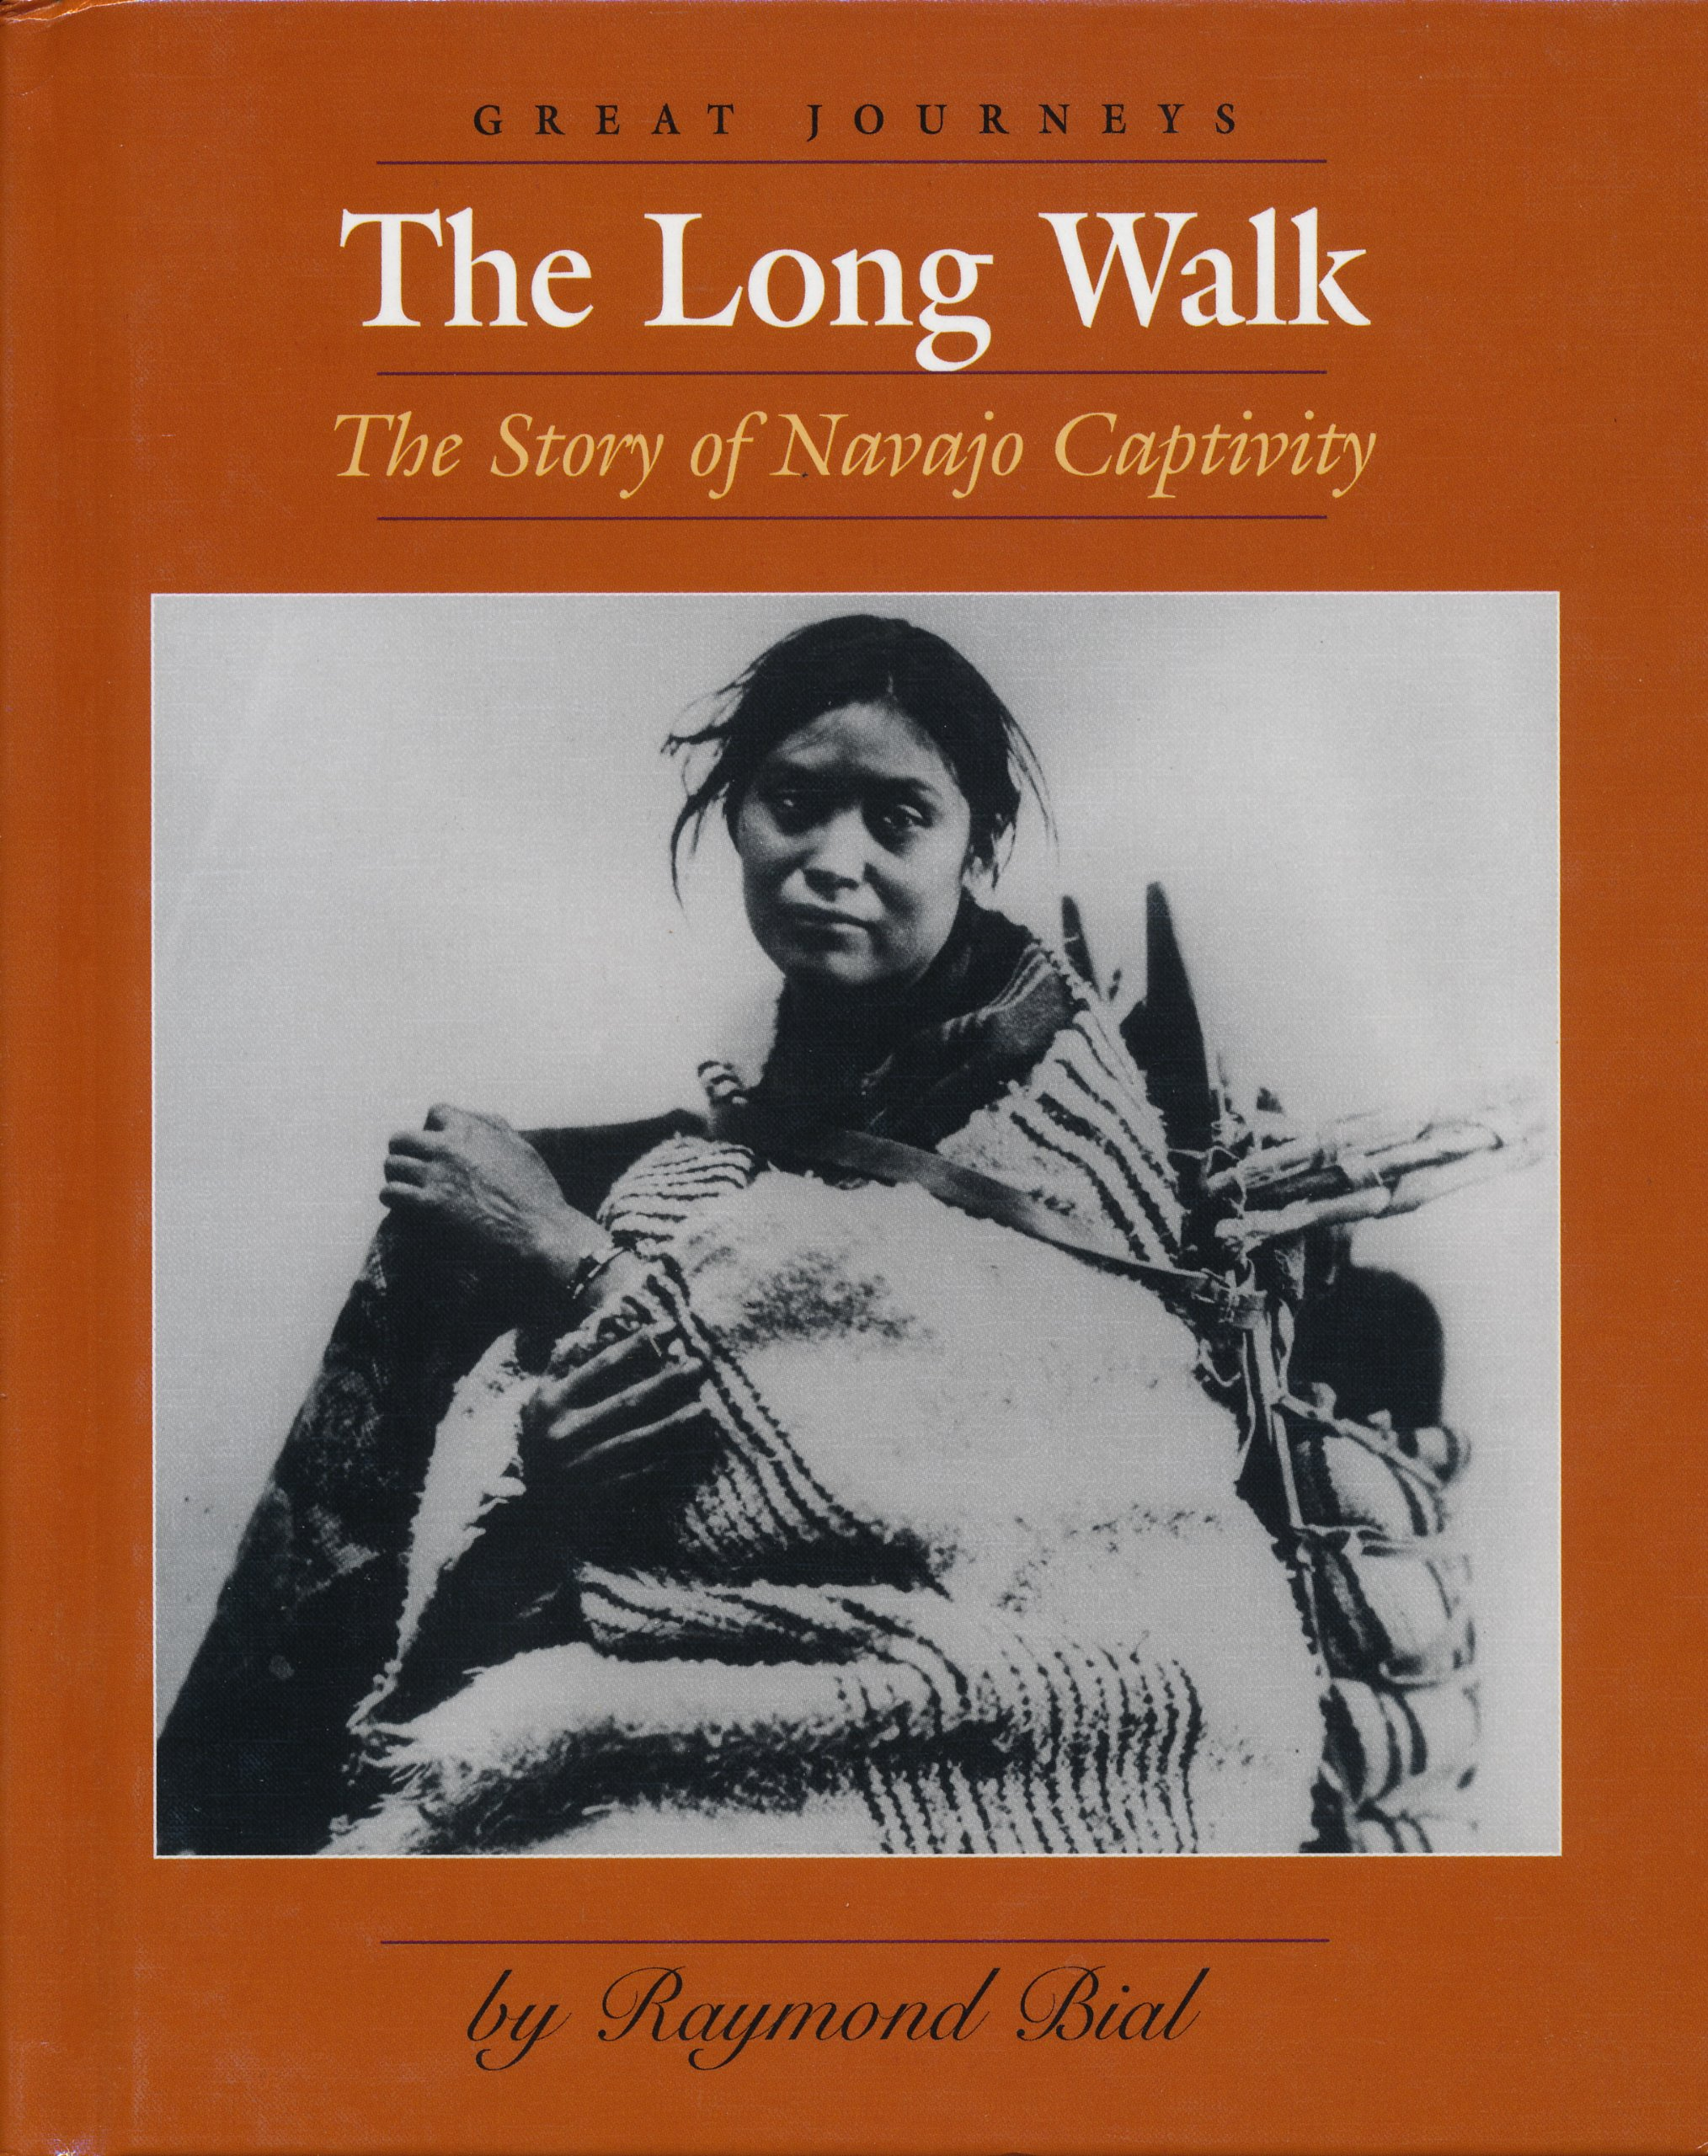 Download The Long Walk: The Story of Navajo Captivity (Great Journeys) PDF